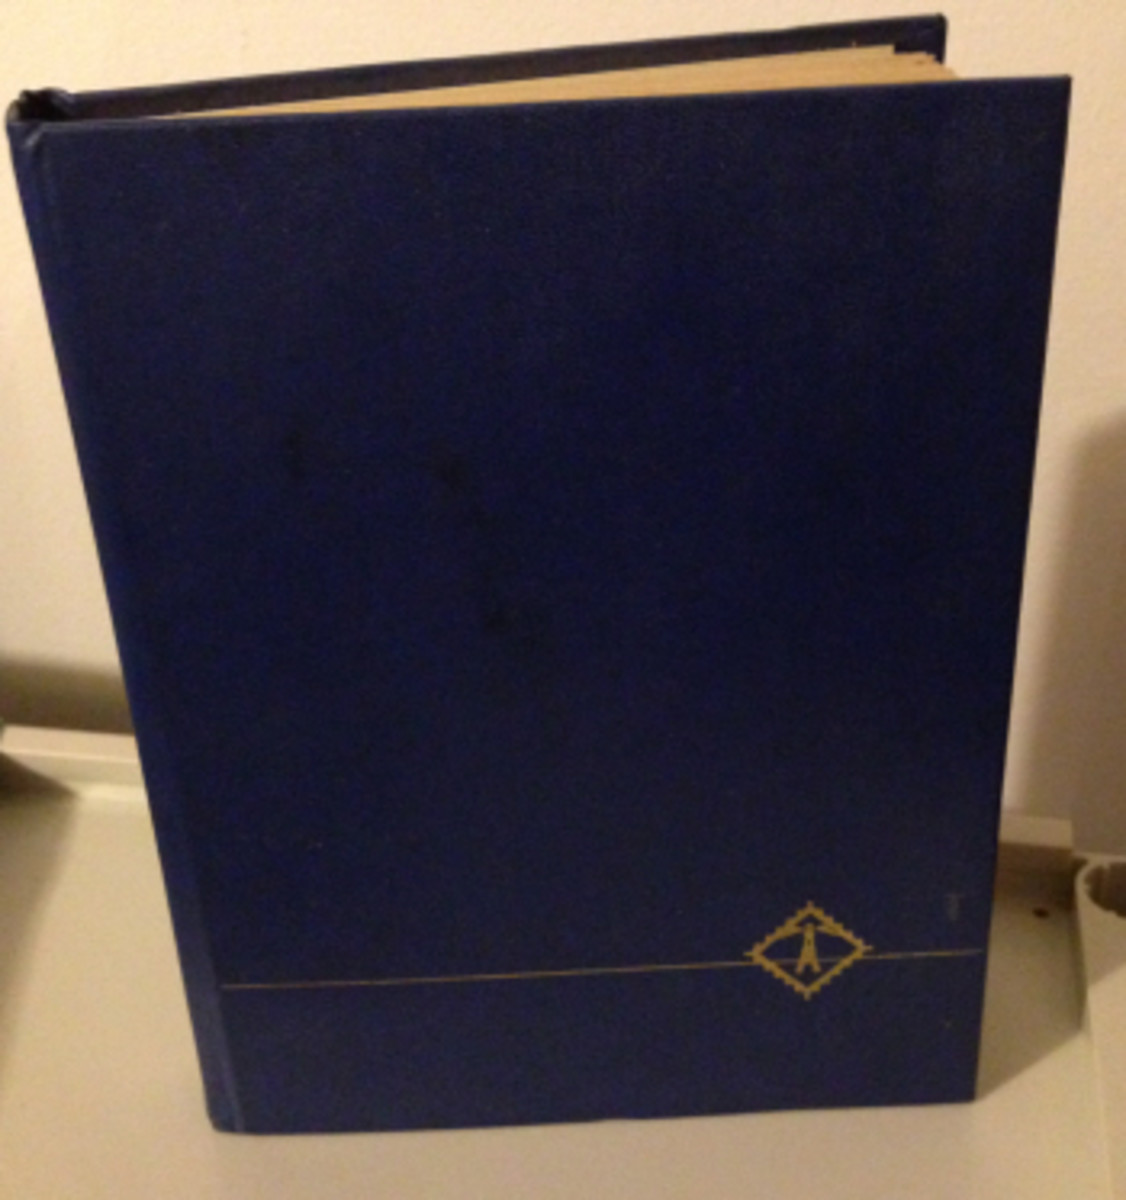 "A regular size stockbook, about 8"" x 11""."